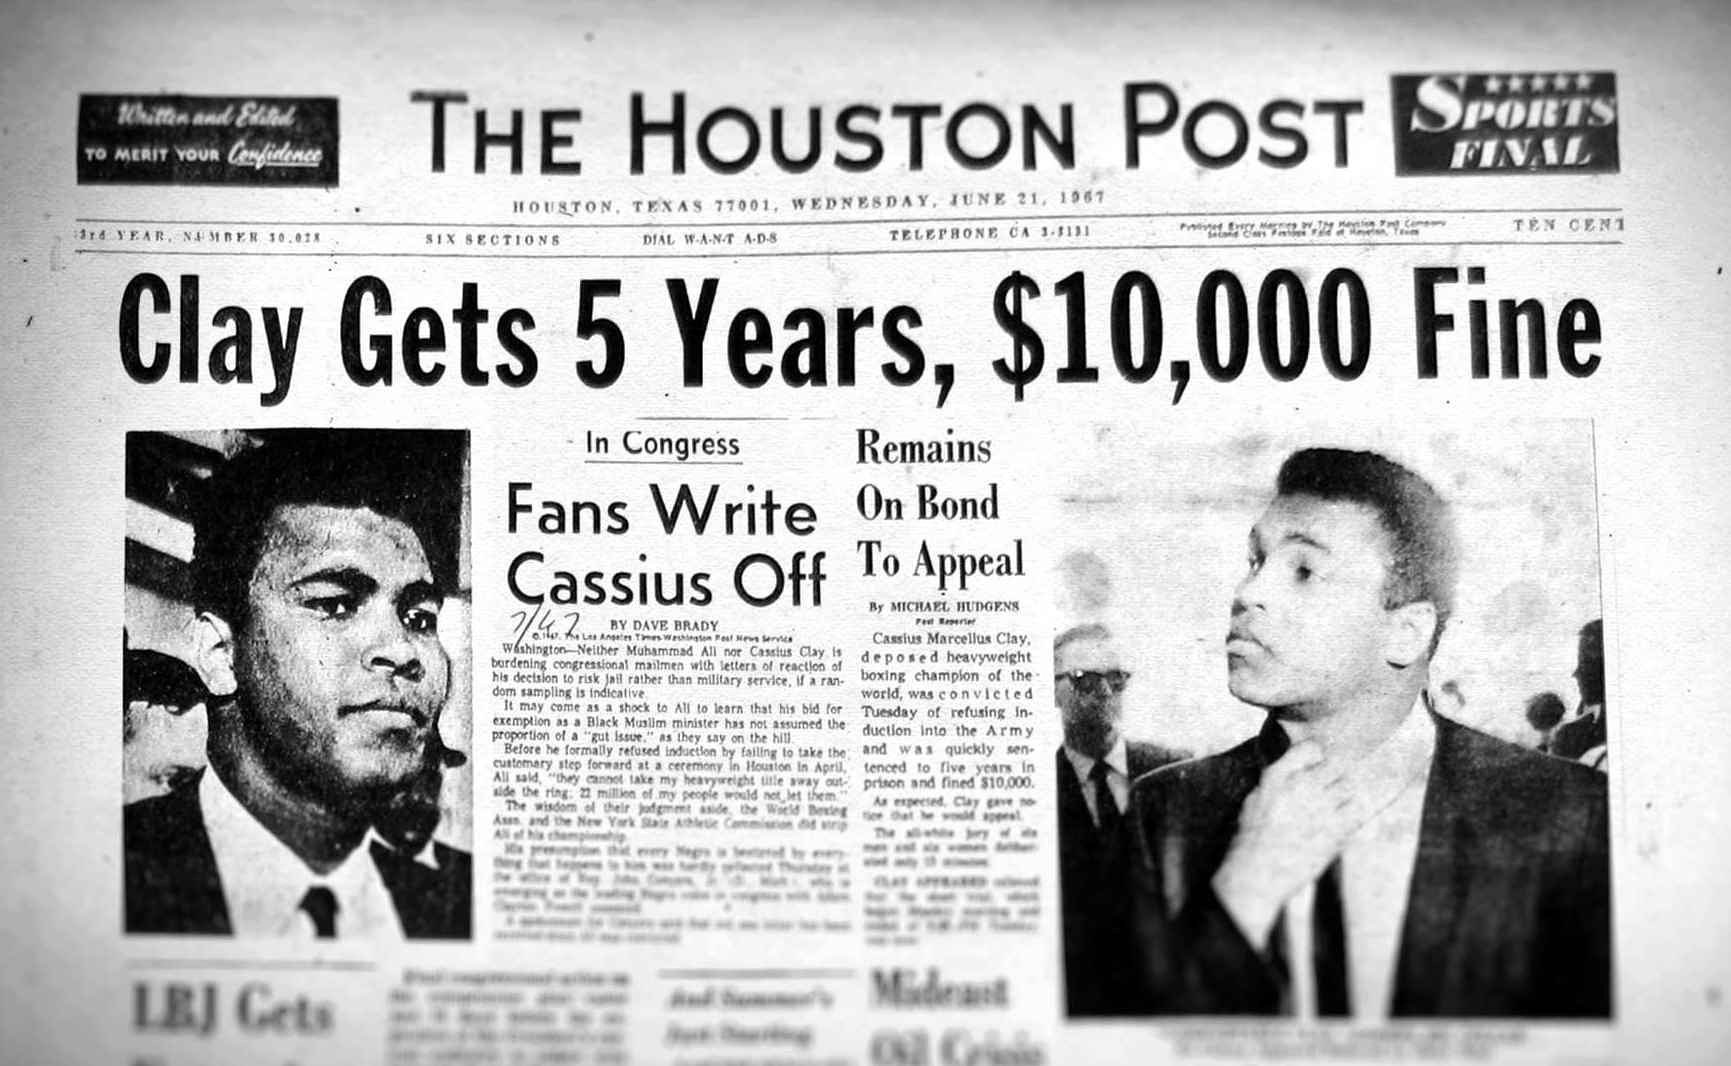 50 yrs ago today Muhammad Ali refused to join U.S. Army & was immediately stripped of heavyweight title. https://t.co/AoyVQFBpxc